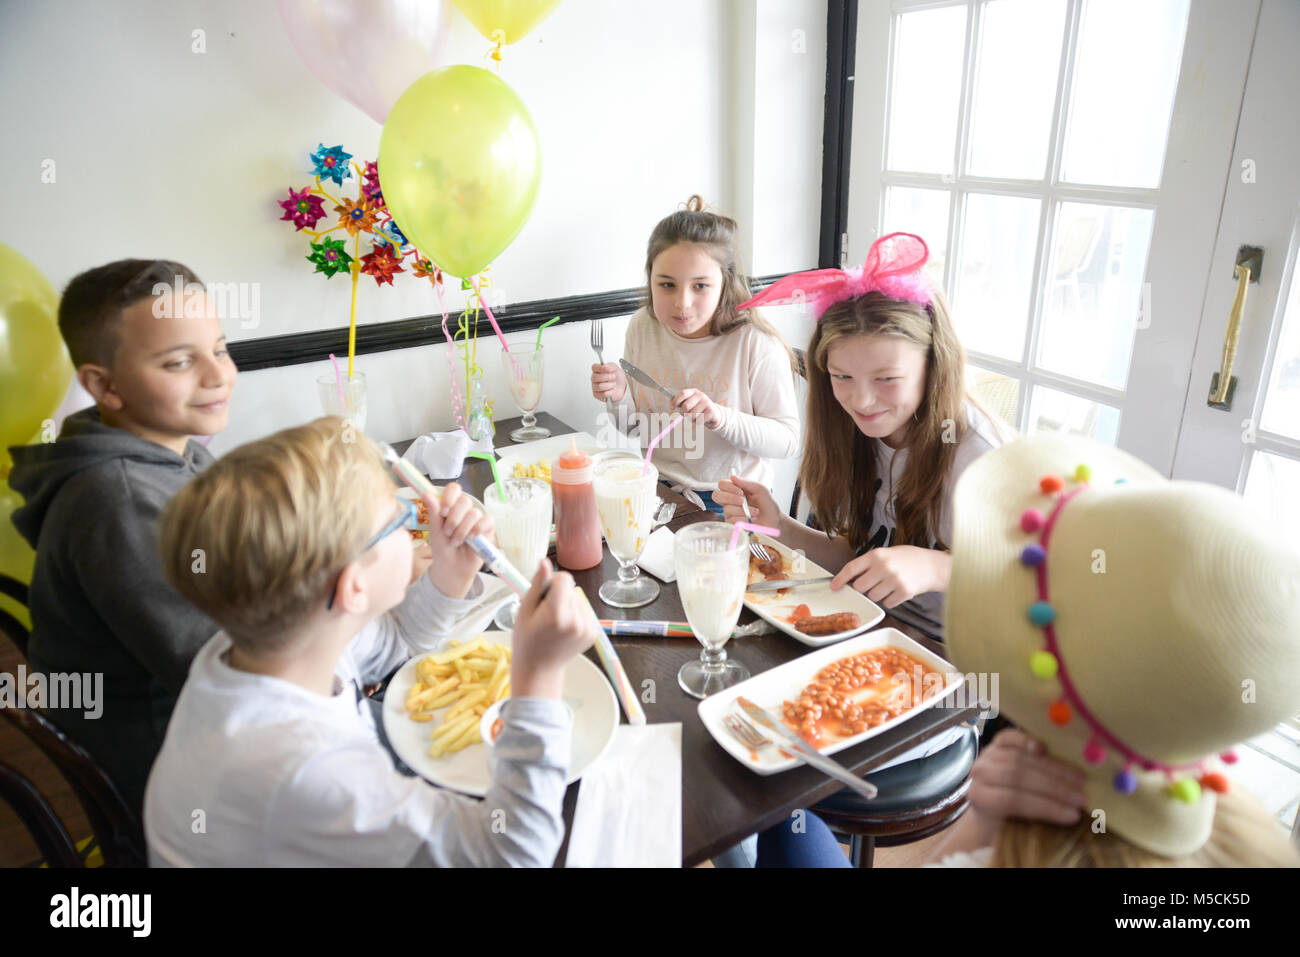 Five young children are sitting at a party table eating fried food and drinking milkshakes- there are balloons and party decorations Stock Photo